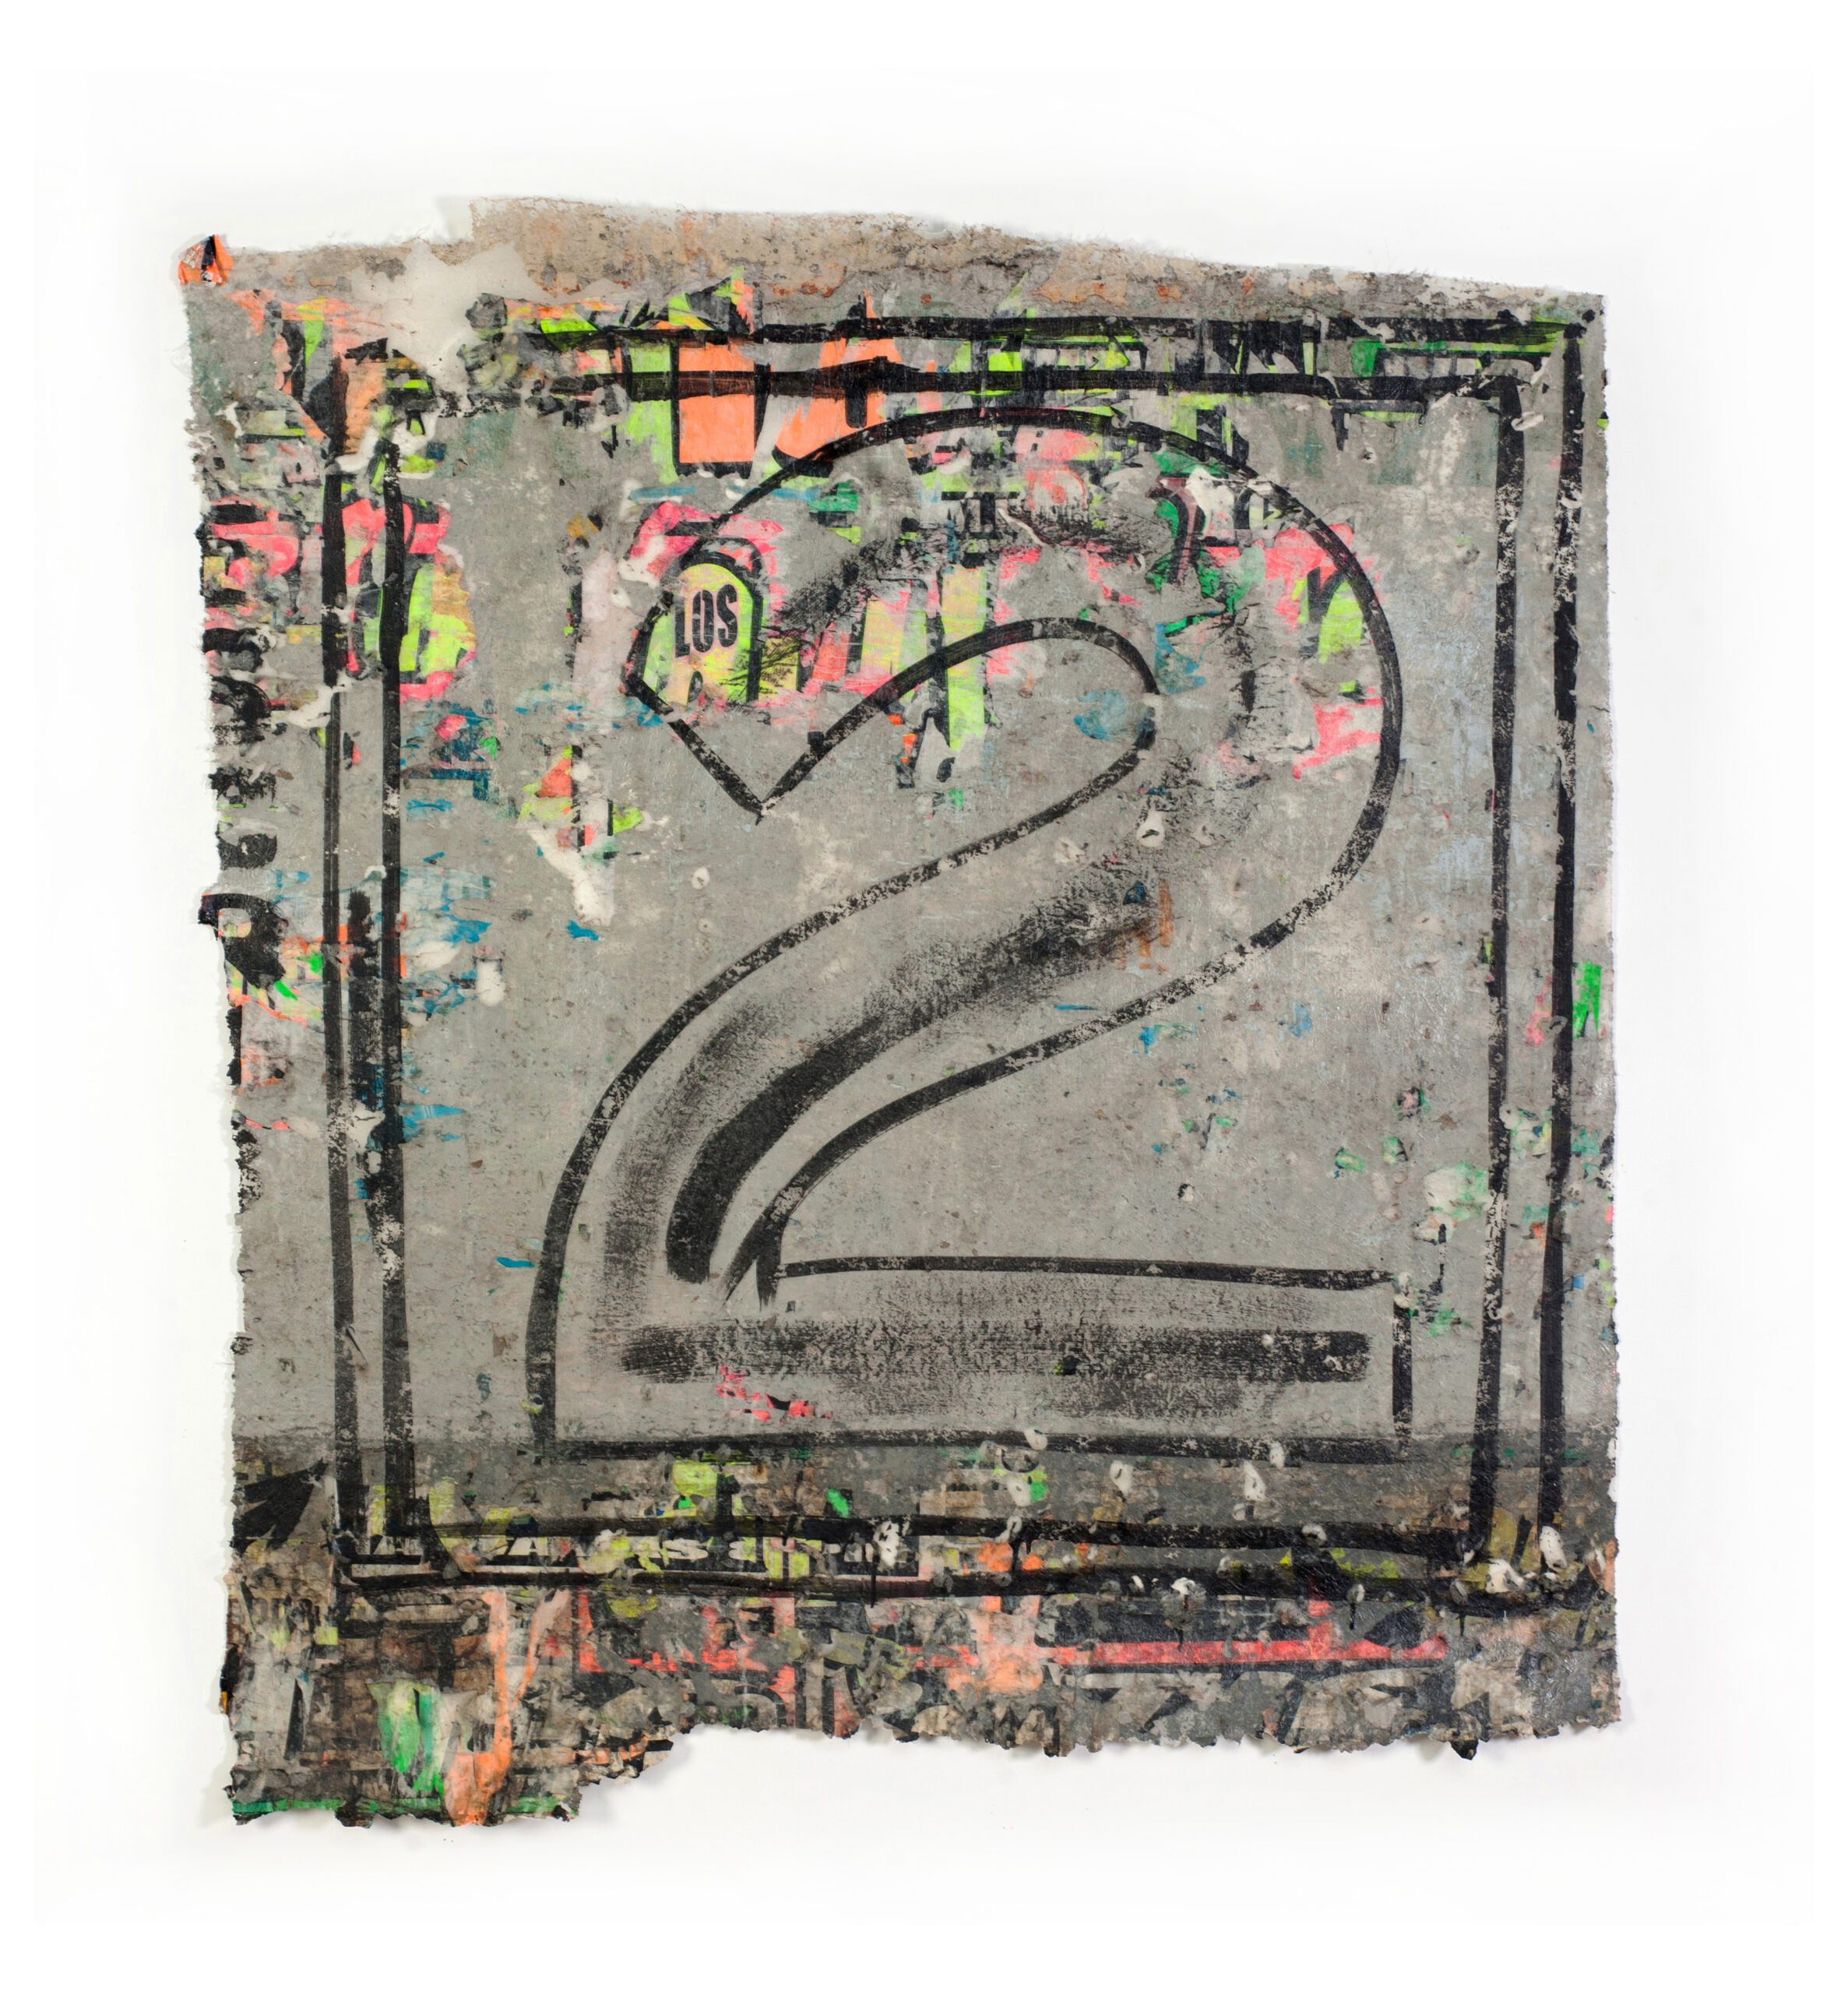 RUINOPHILIA – José Carlos Martinat 2021 Found graffiti and acrylic wall extraction 78.74 x 70.8 inches (200 x 180 cm) 2021 Marc Straus Gallery